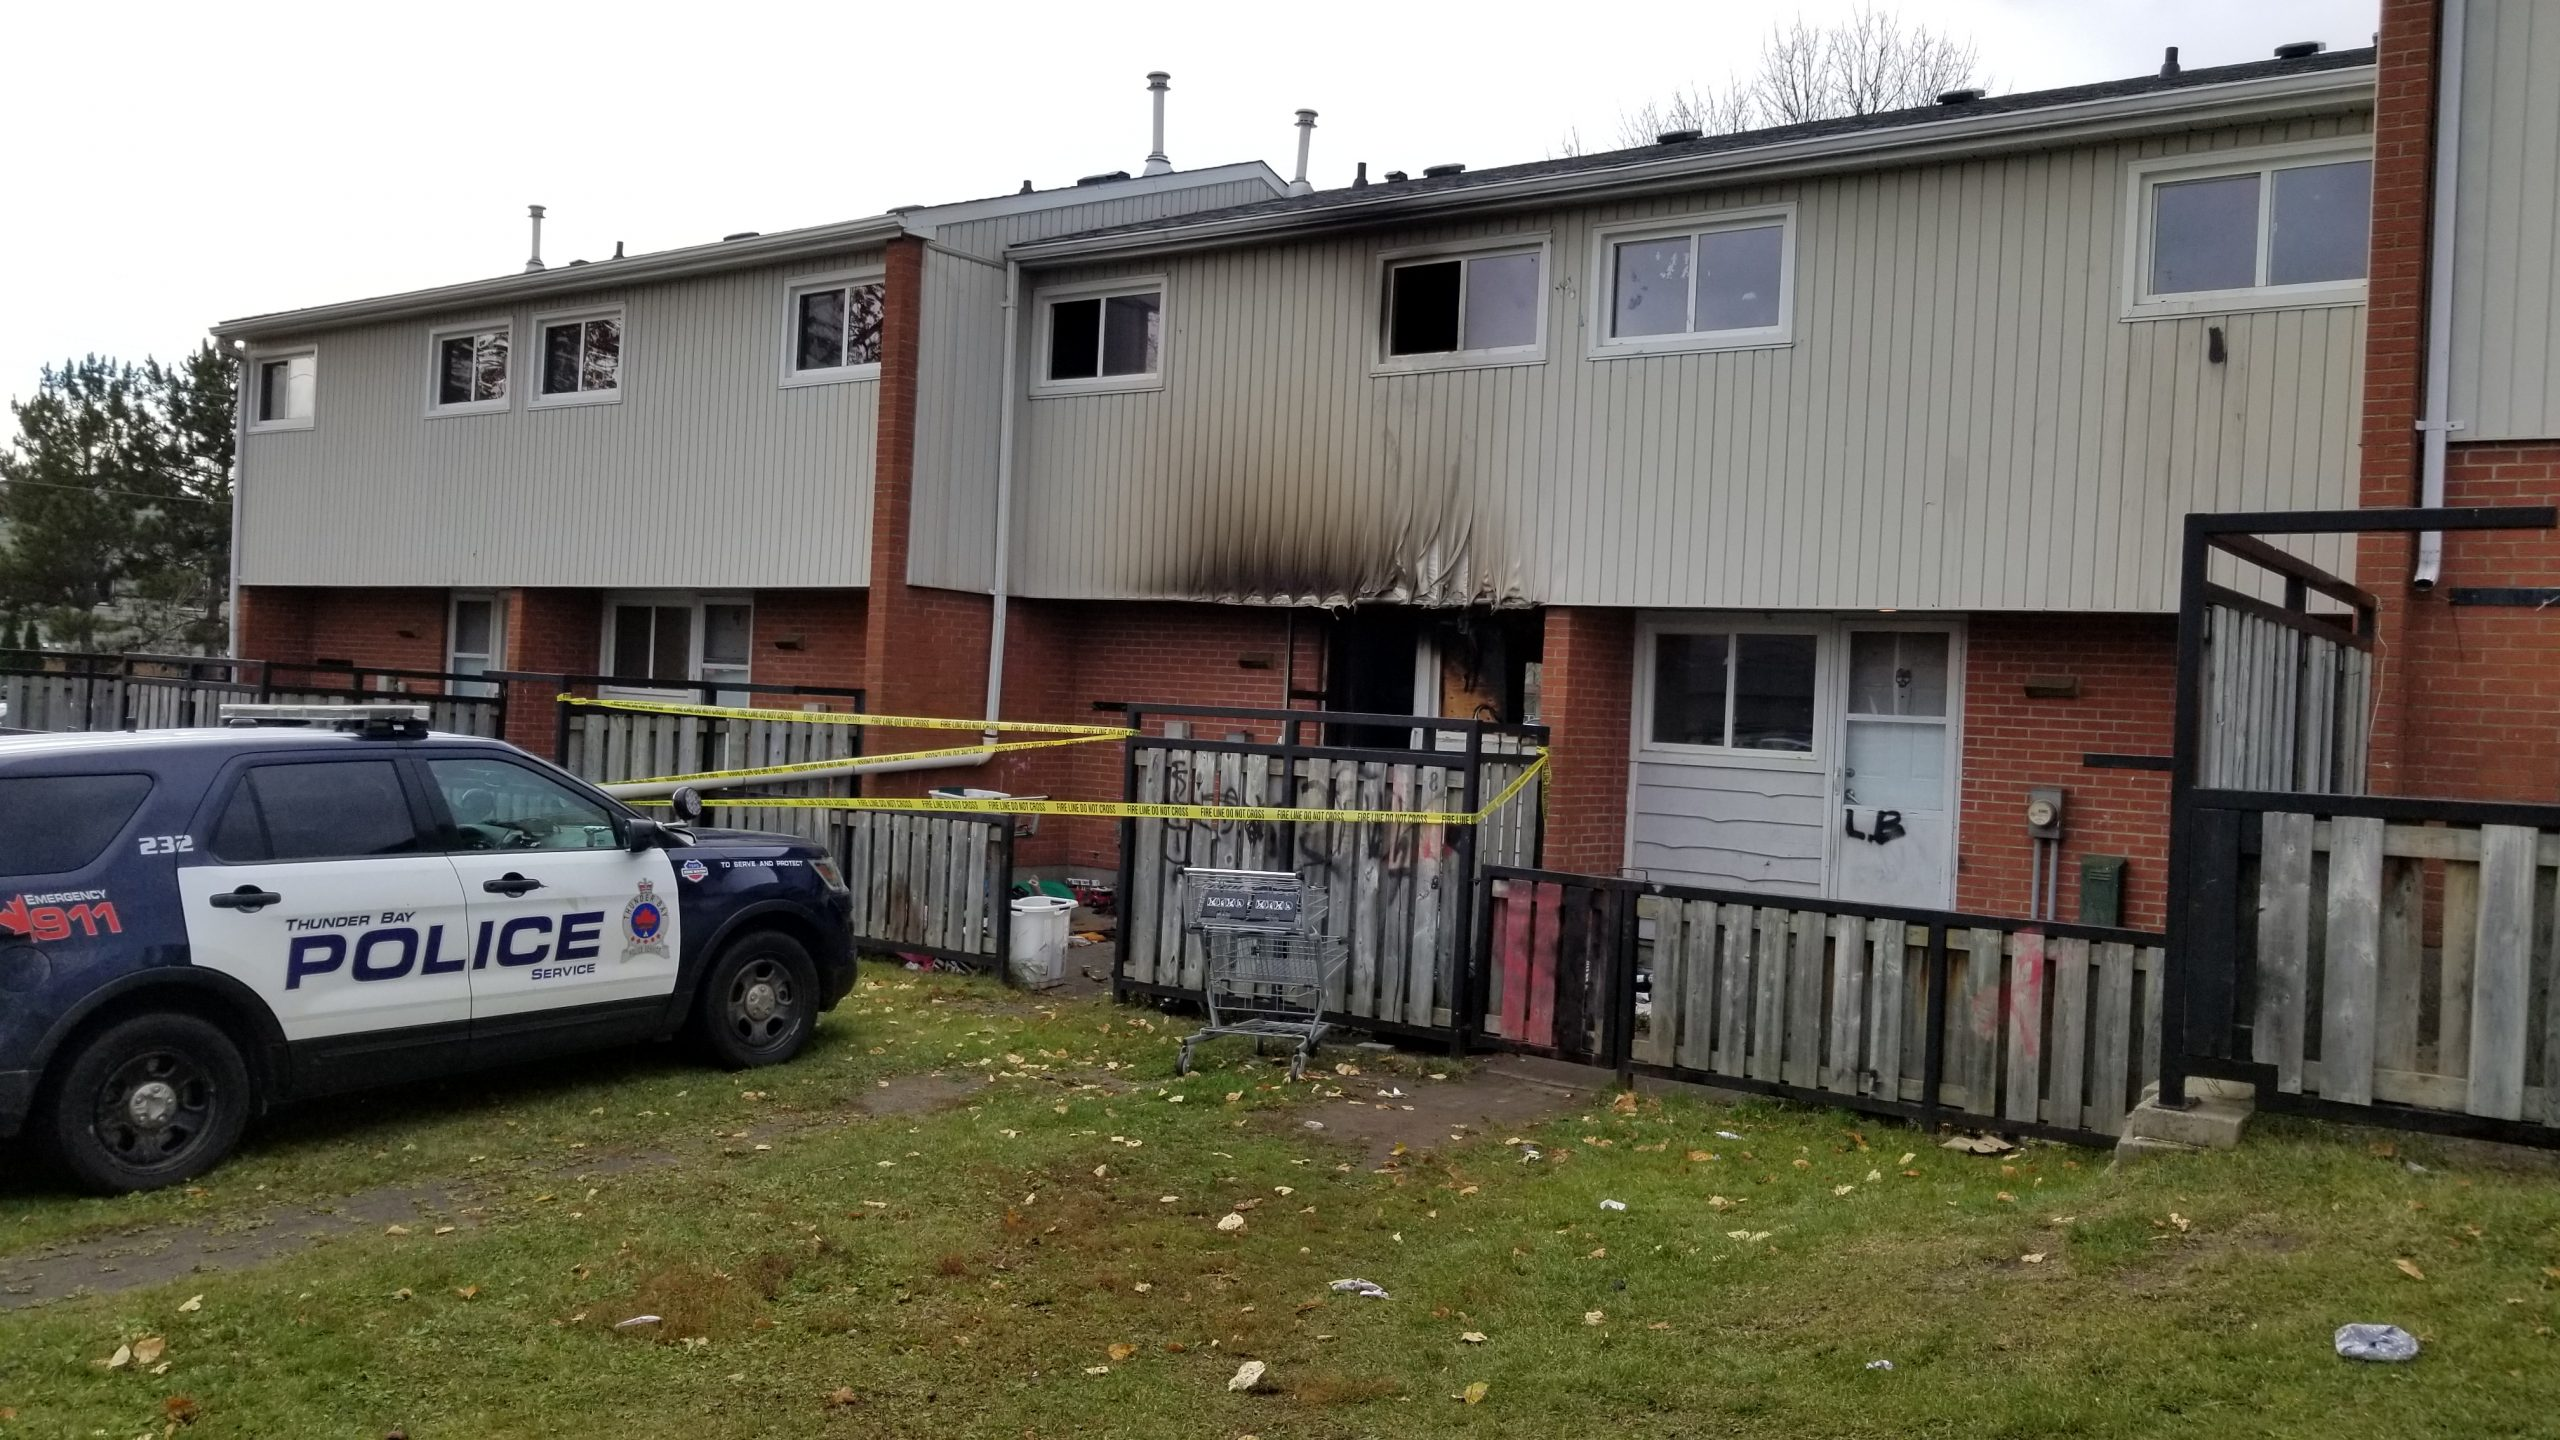 BREAKING: Arrest In Fatal Fire Investigation